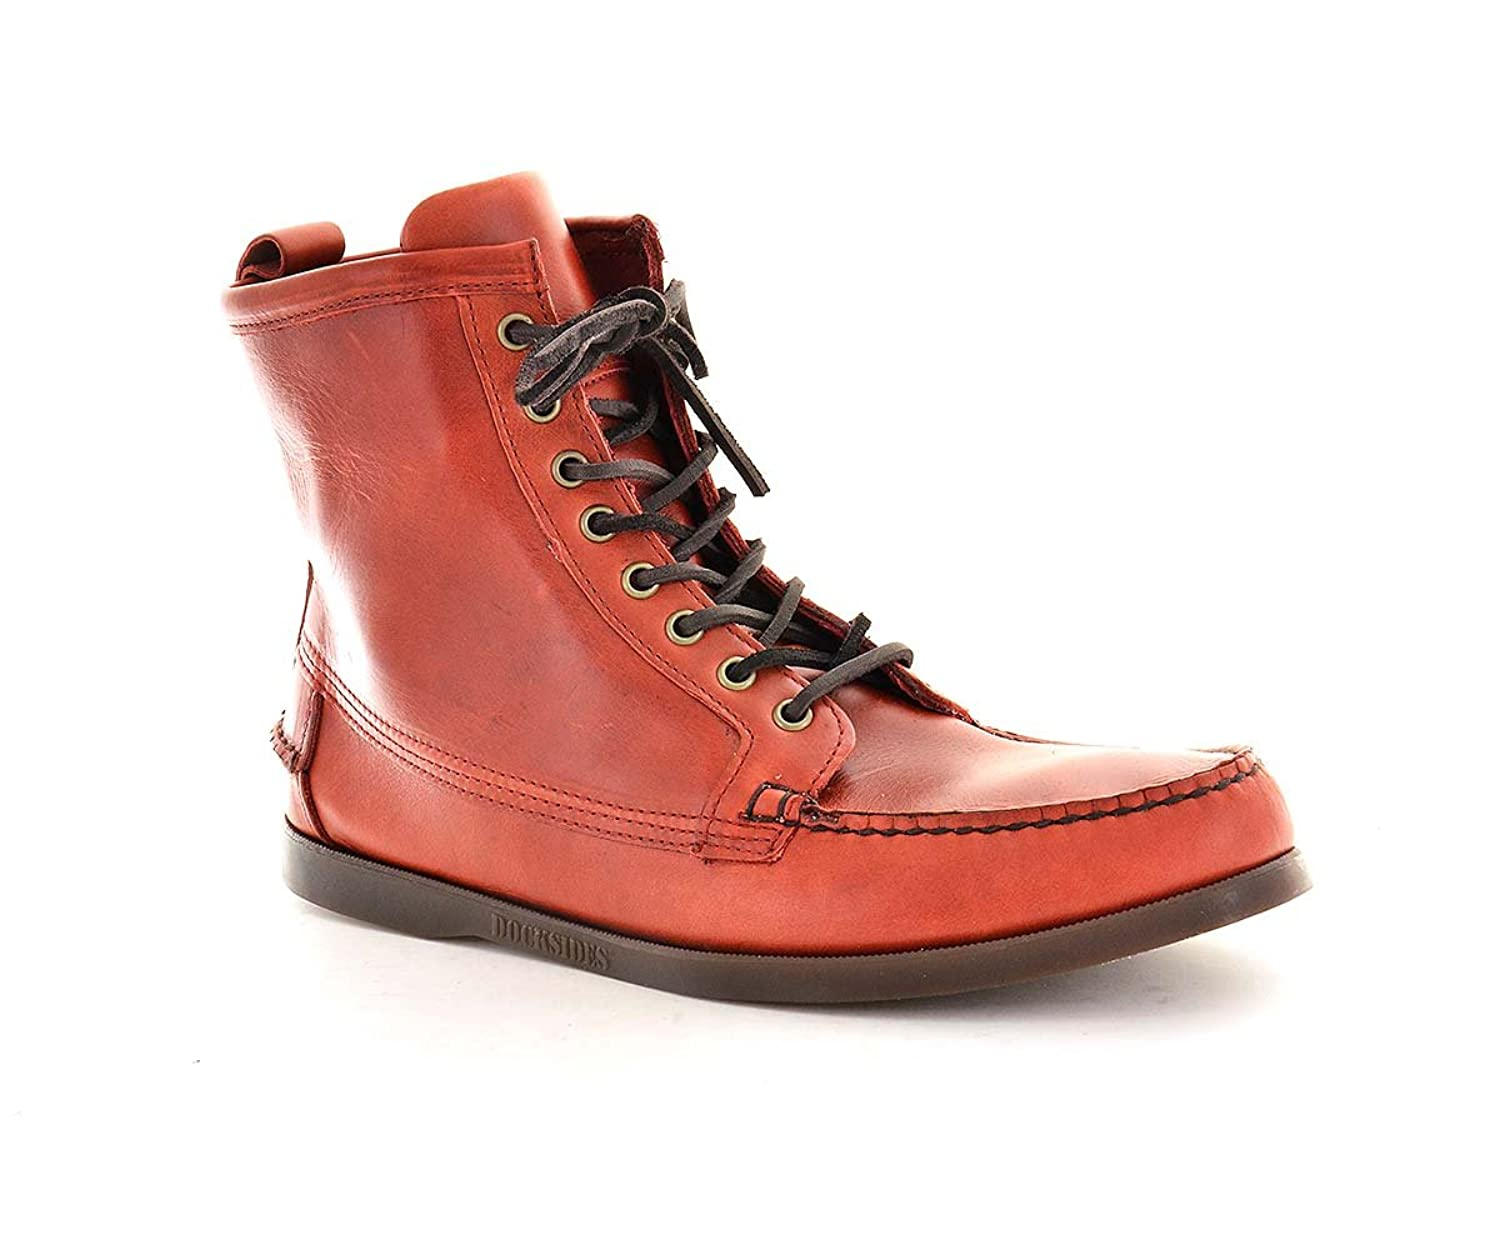 5d1c21b7ad1 lovely Sebago Mens Ankle Boots B73100 Se1 Red Leather - toprace.co.uk